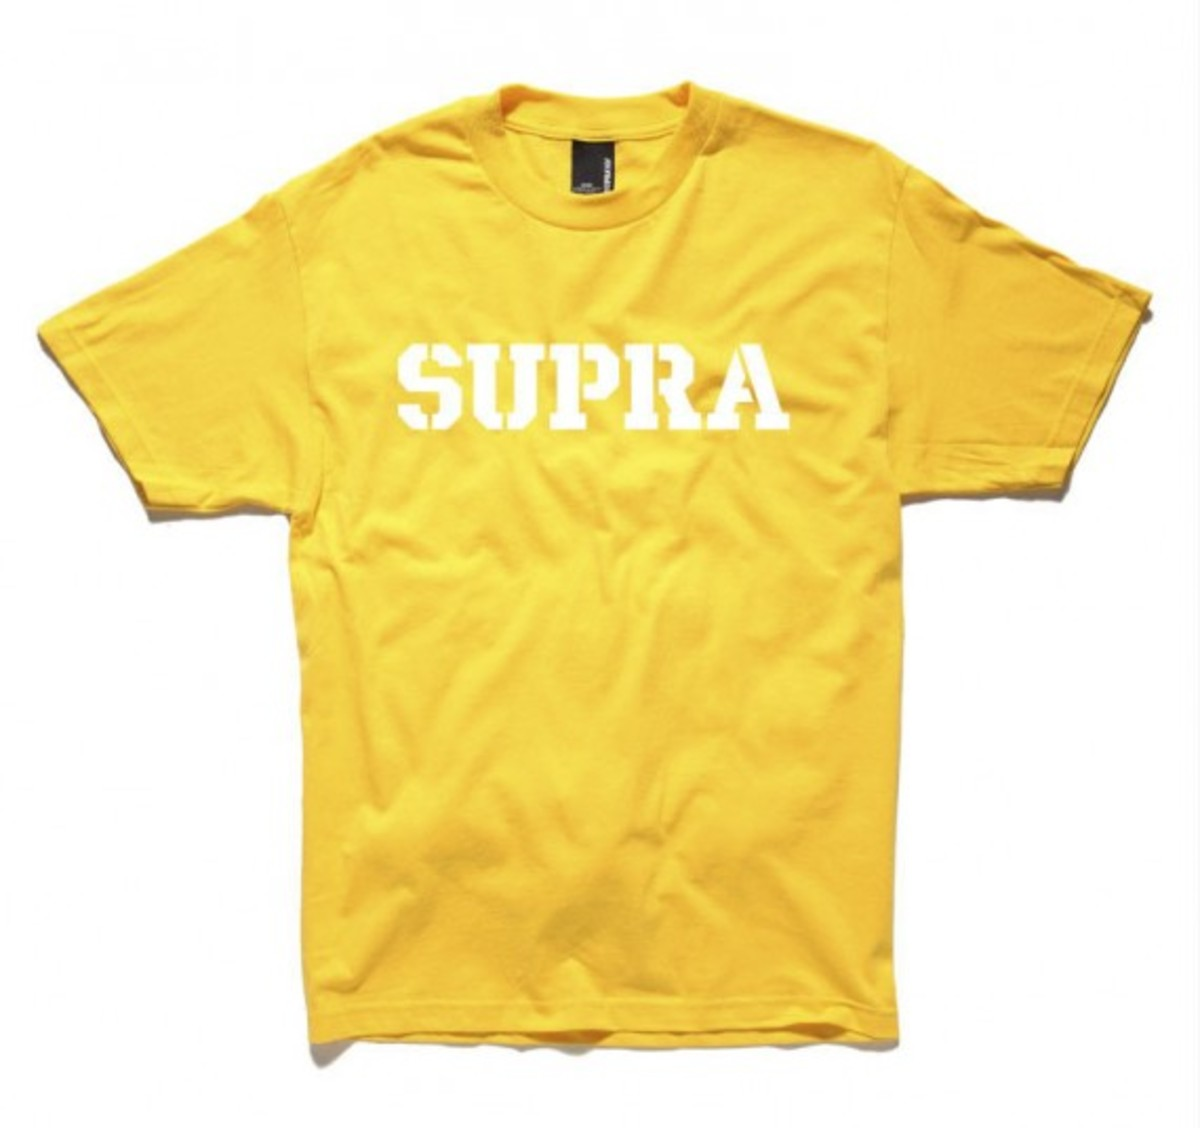 supra-mark-tshirt-13